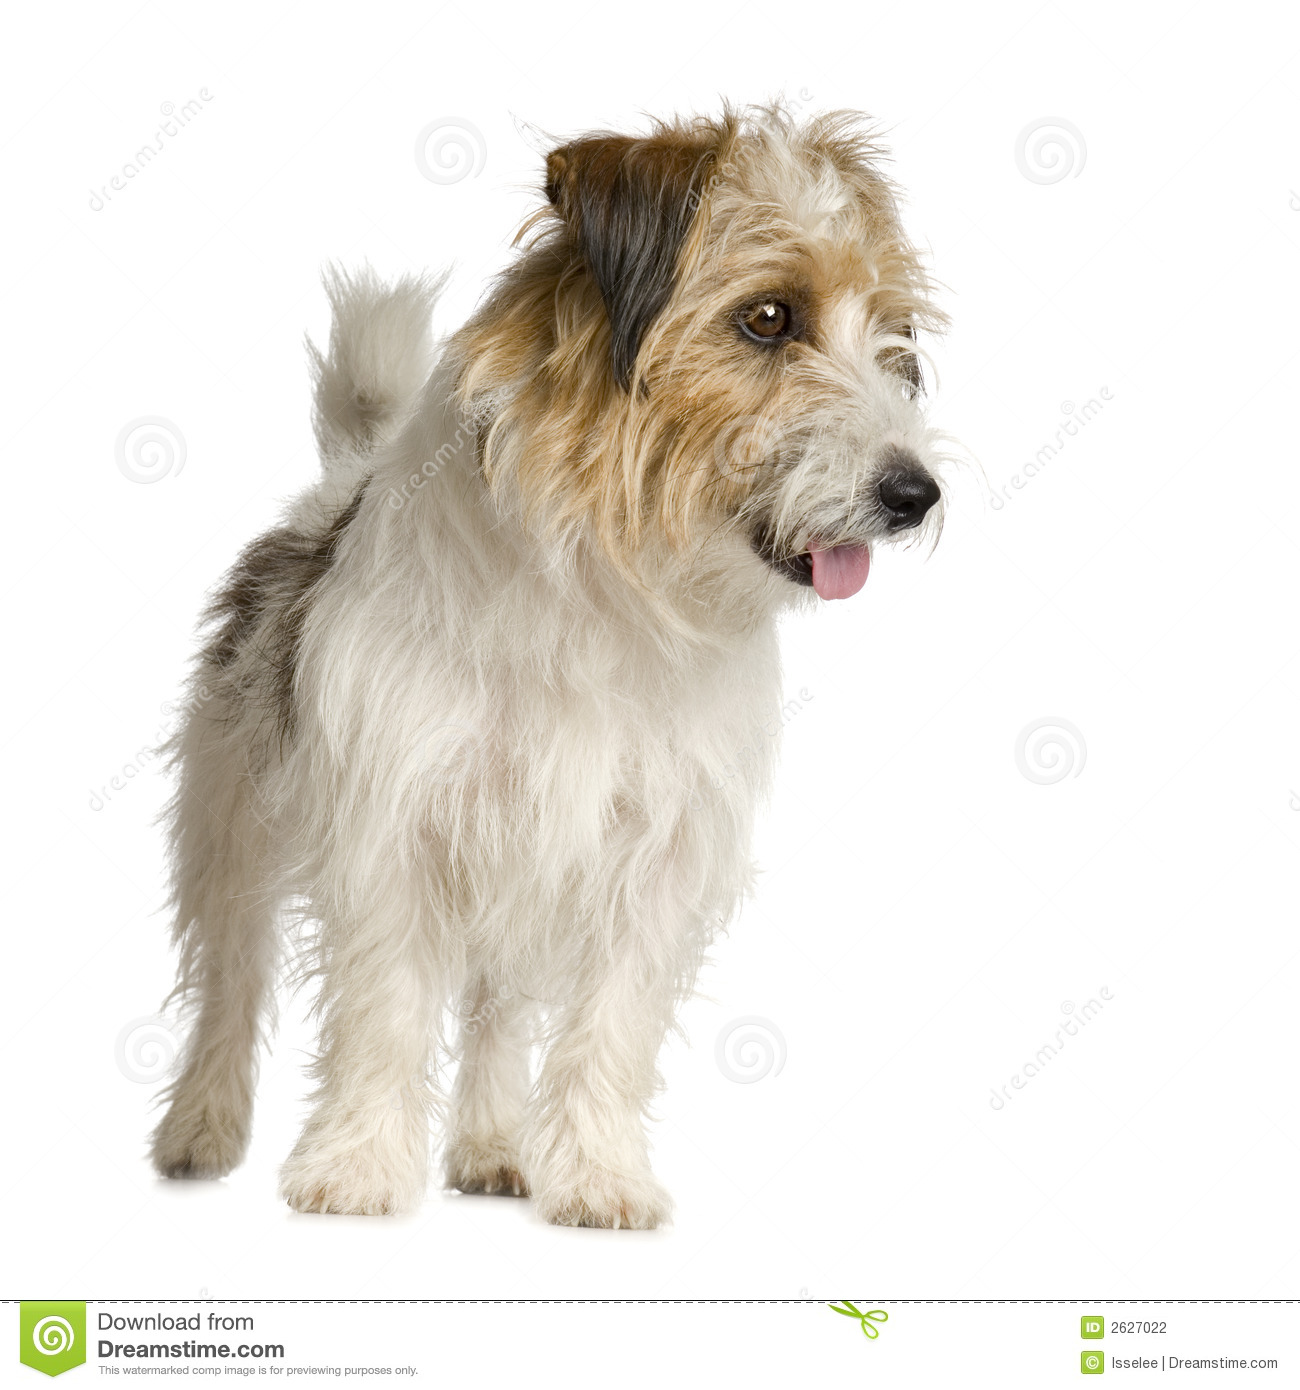 Jack russel long haired in front of a white background.